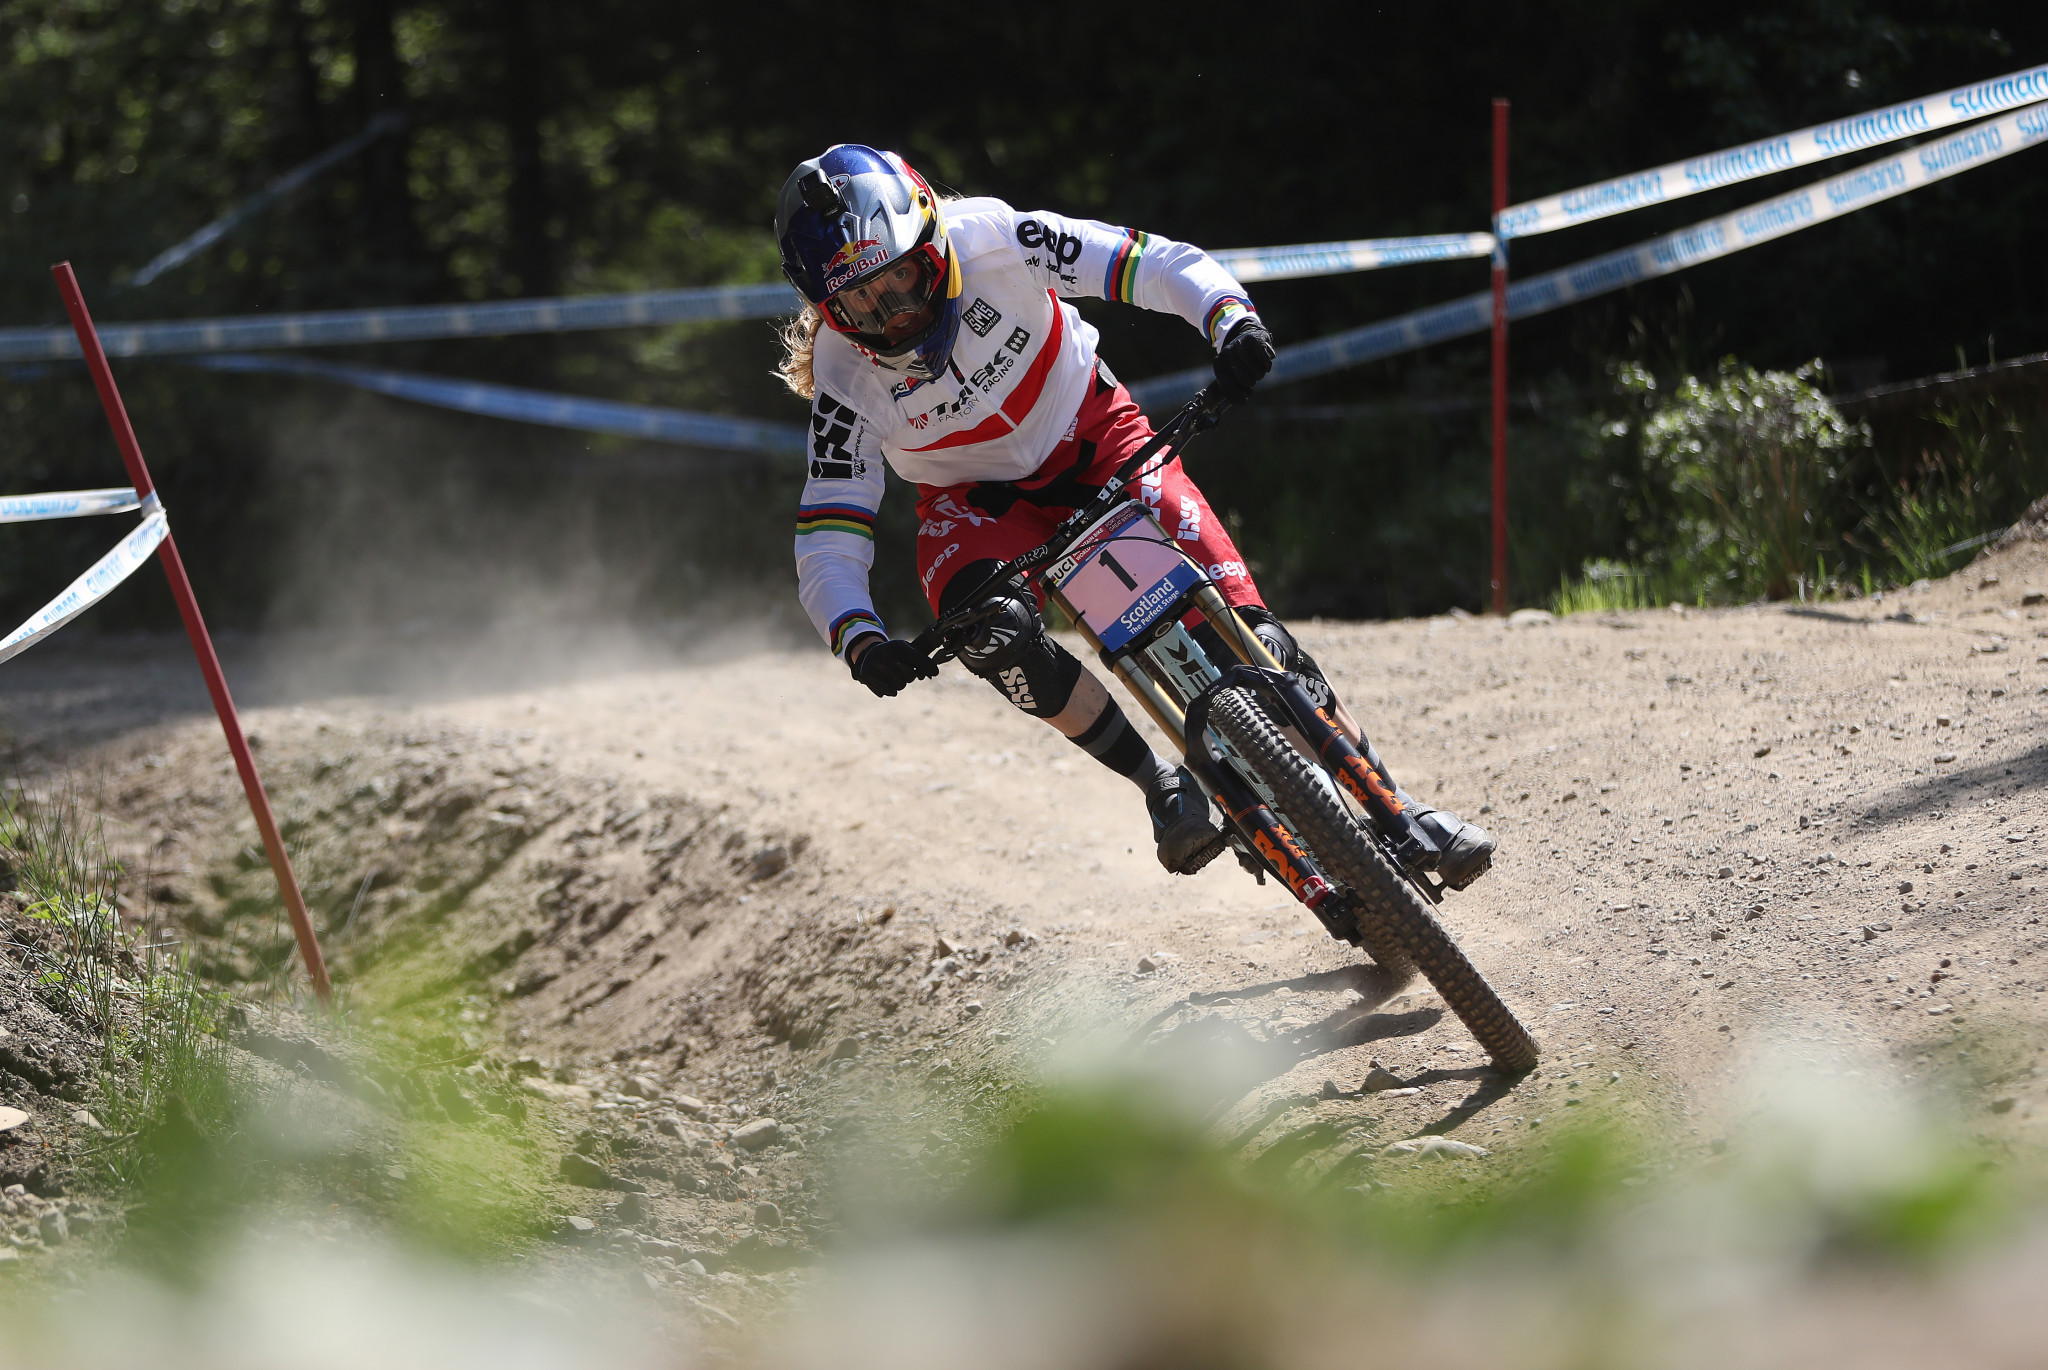 France's Loïc Bruni and Great Britain's Rachel Atherton, pictured, won the respective men's and women's downhill events at this weekend's UCI Mountain Bike World Cup in Vallnord in Andorra ©Getty Images